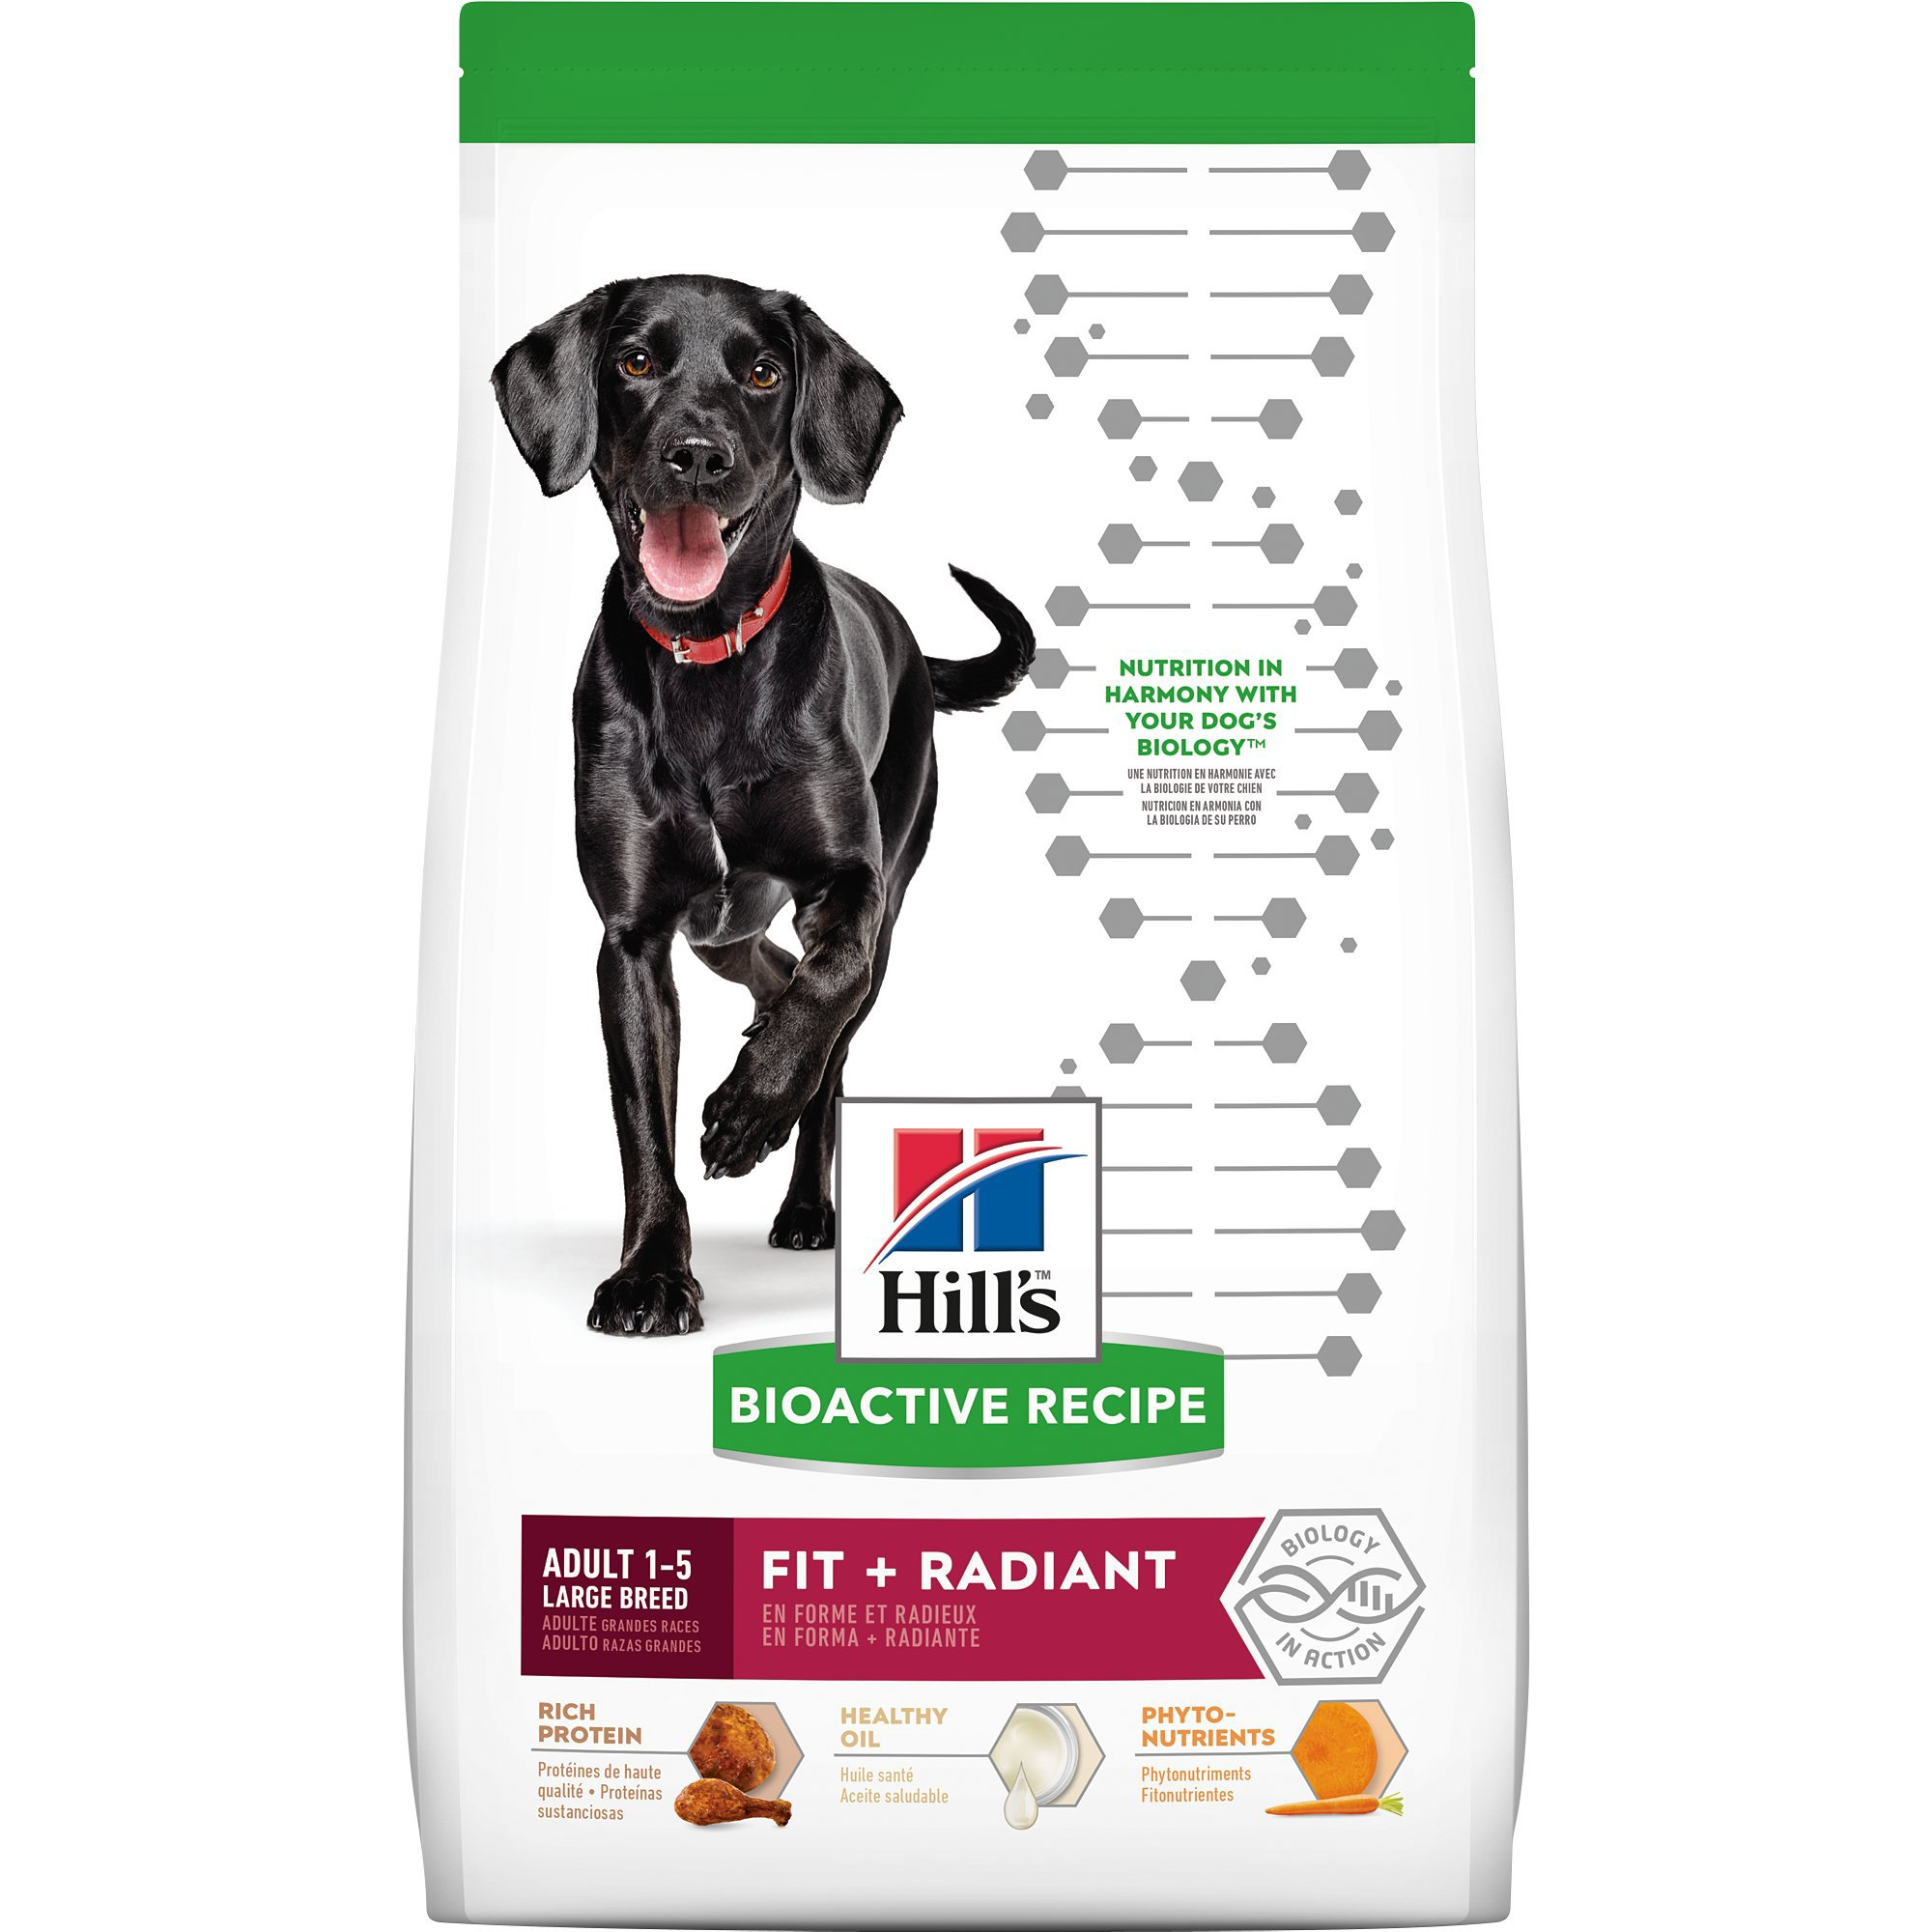 Hill's Bioactive Recipe Fit + Radiant Chicken & Barley Adult Large Breed Dry Dog Food, 22.5 lbs.